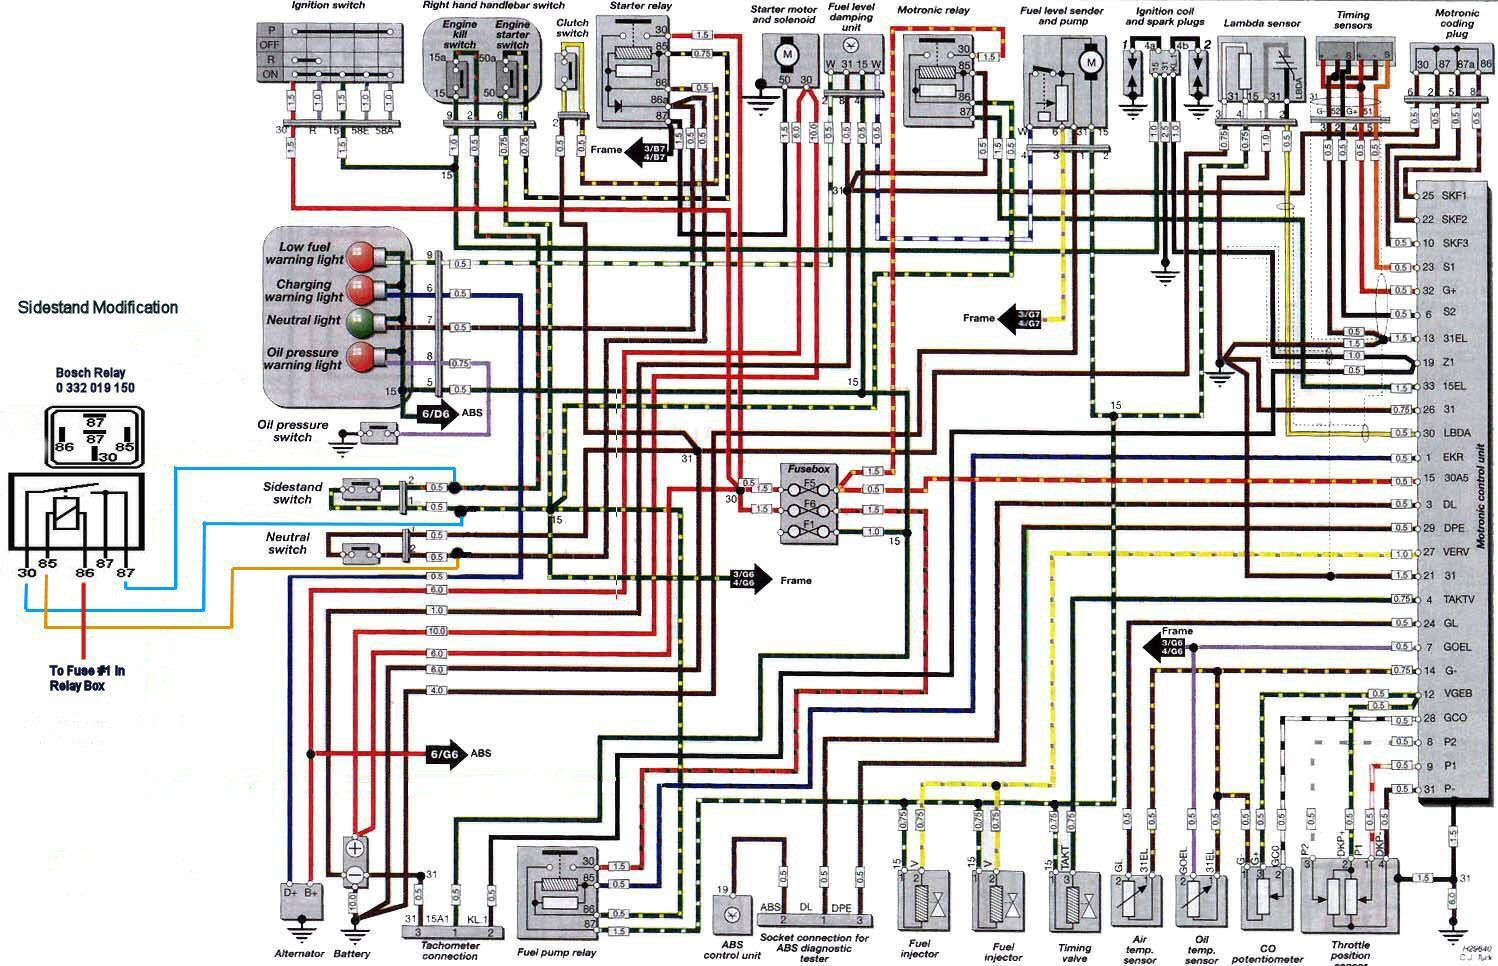 Magnificent Bmw R1150R Electrical Wiring Diagram 1 Bmv Electrical Wiring Wiring Cloud Brecesaoduqqnet